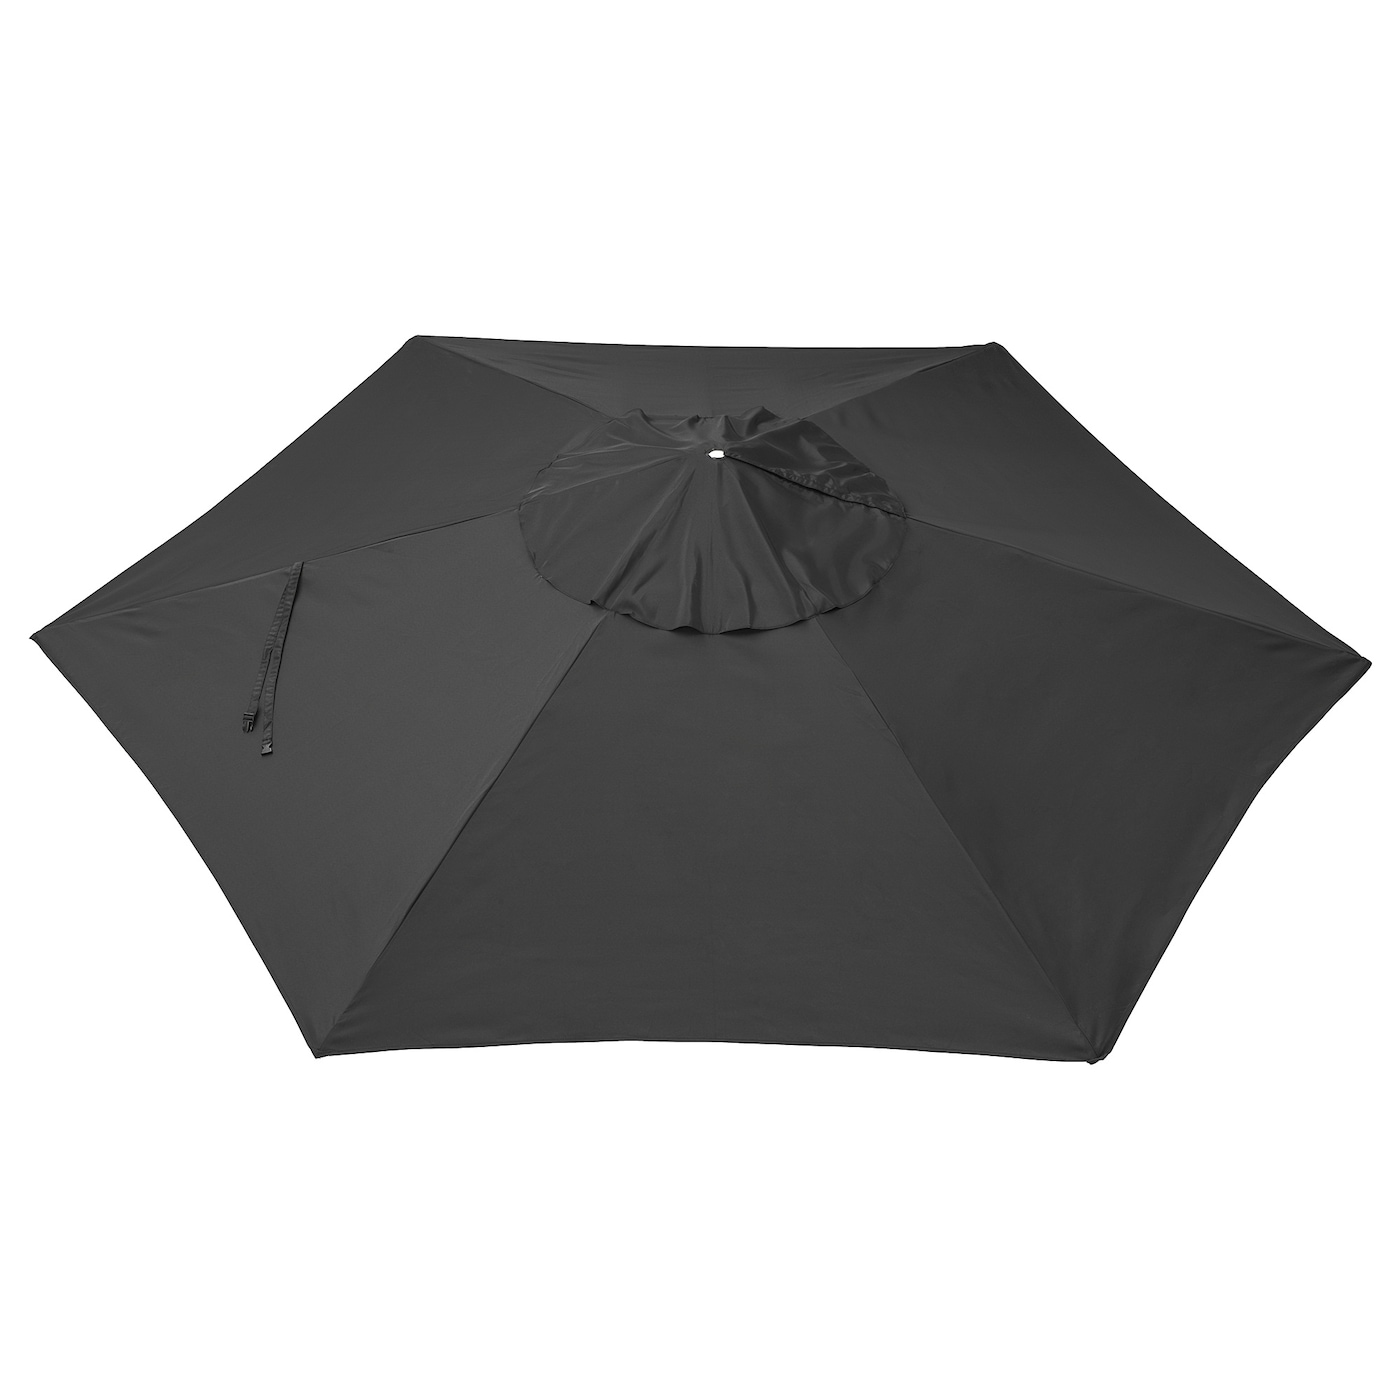 IKEA LINDÖJA parasol canopy The strap with buckle keeps the fabric in place when folded.